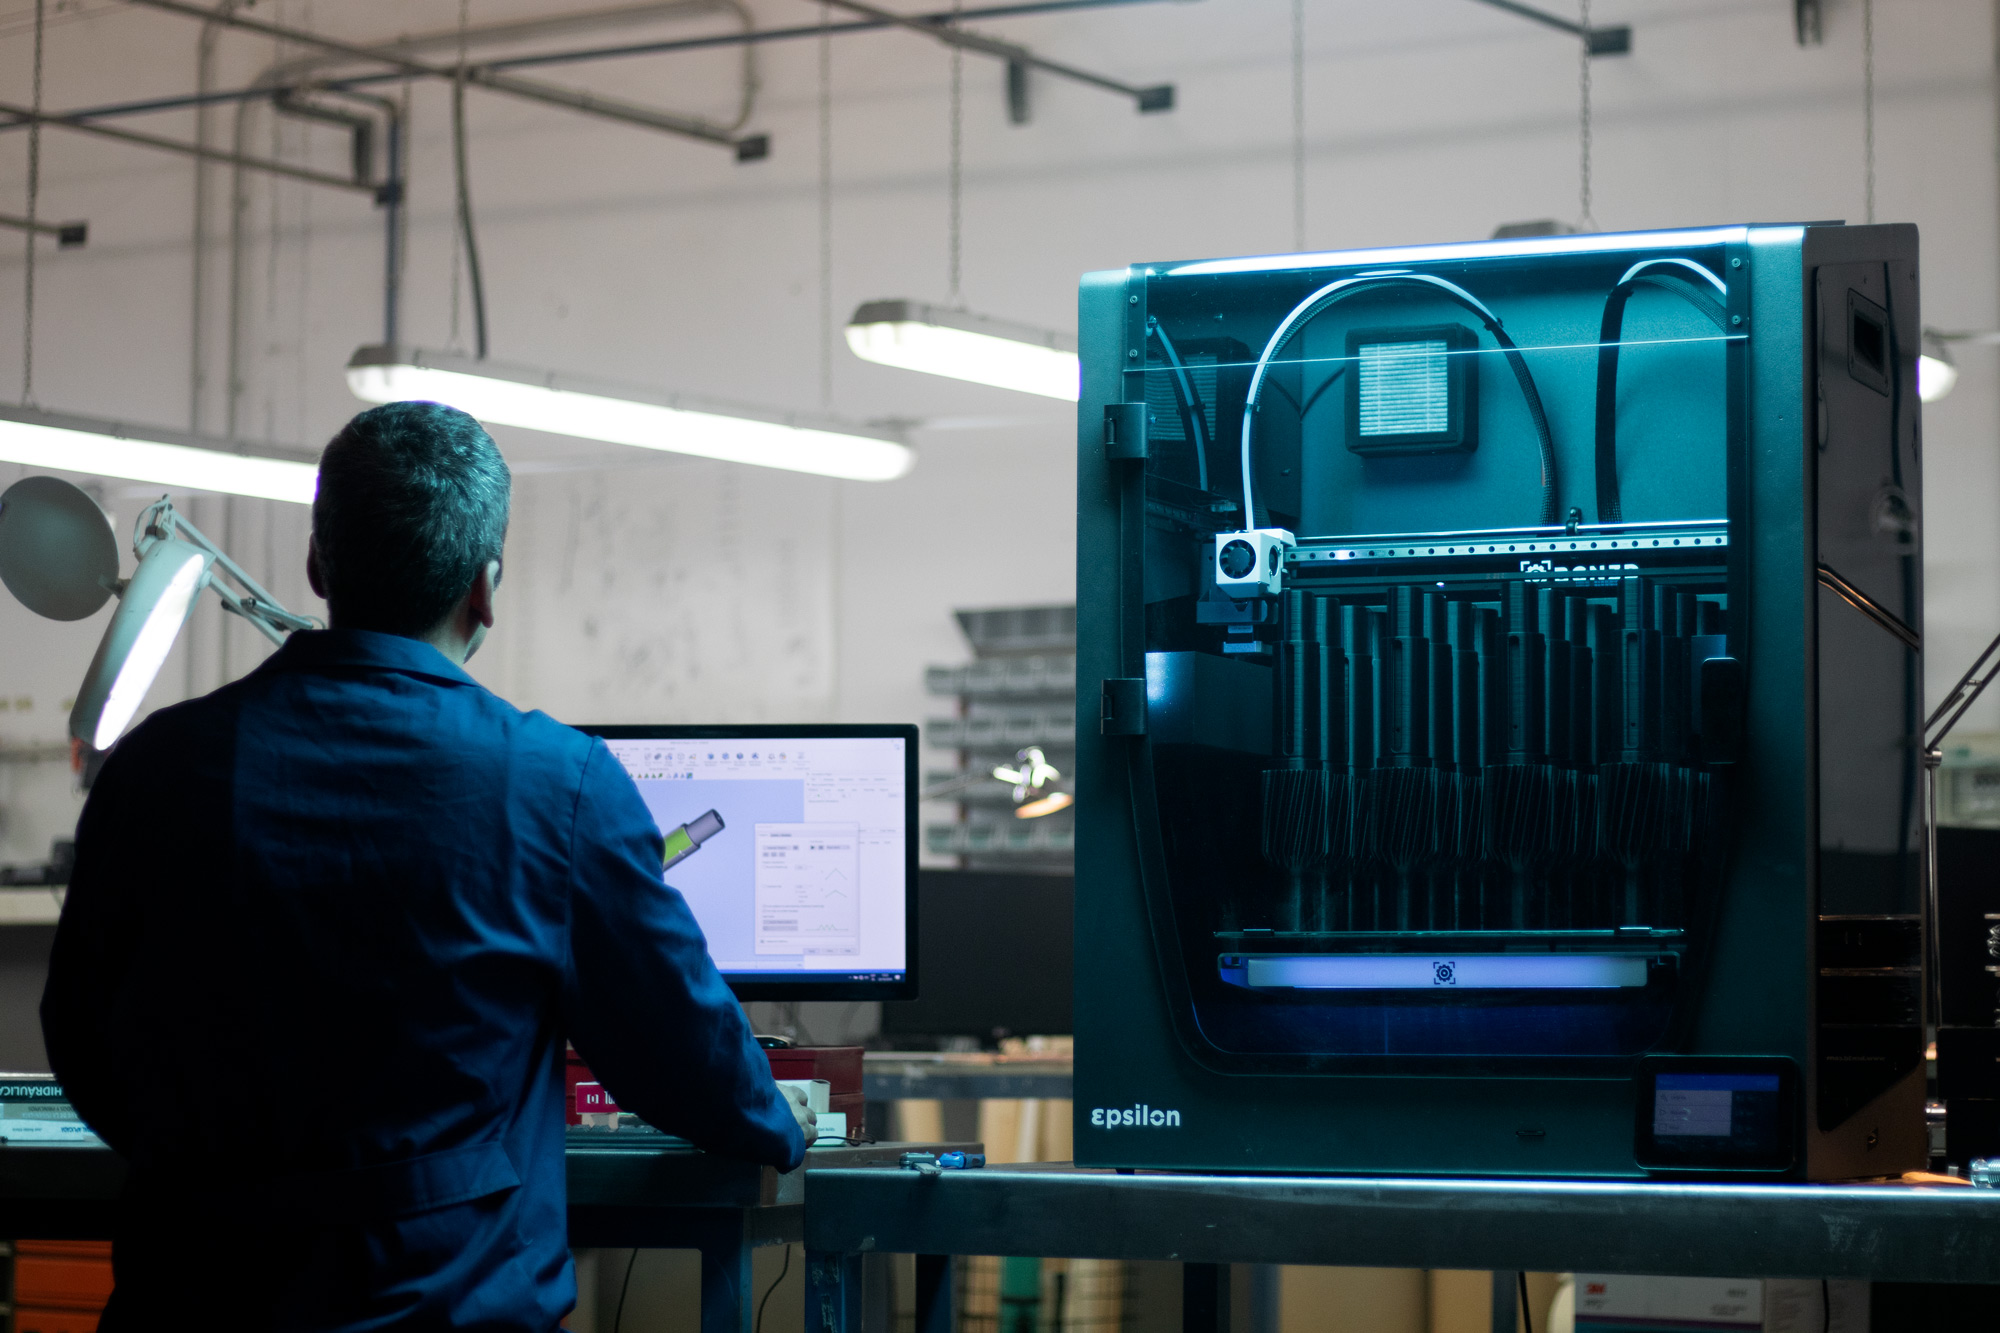 BCN3D_Epsilon_3D_Printer_IDEX_Dual_Extrusion_industrial_work_space